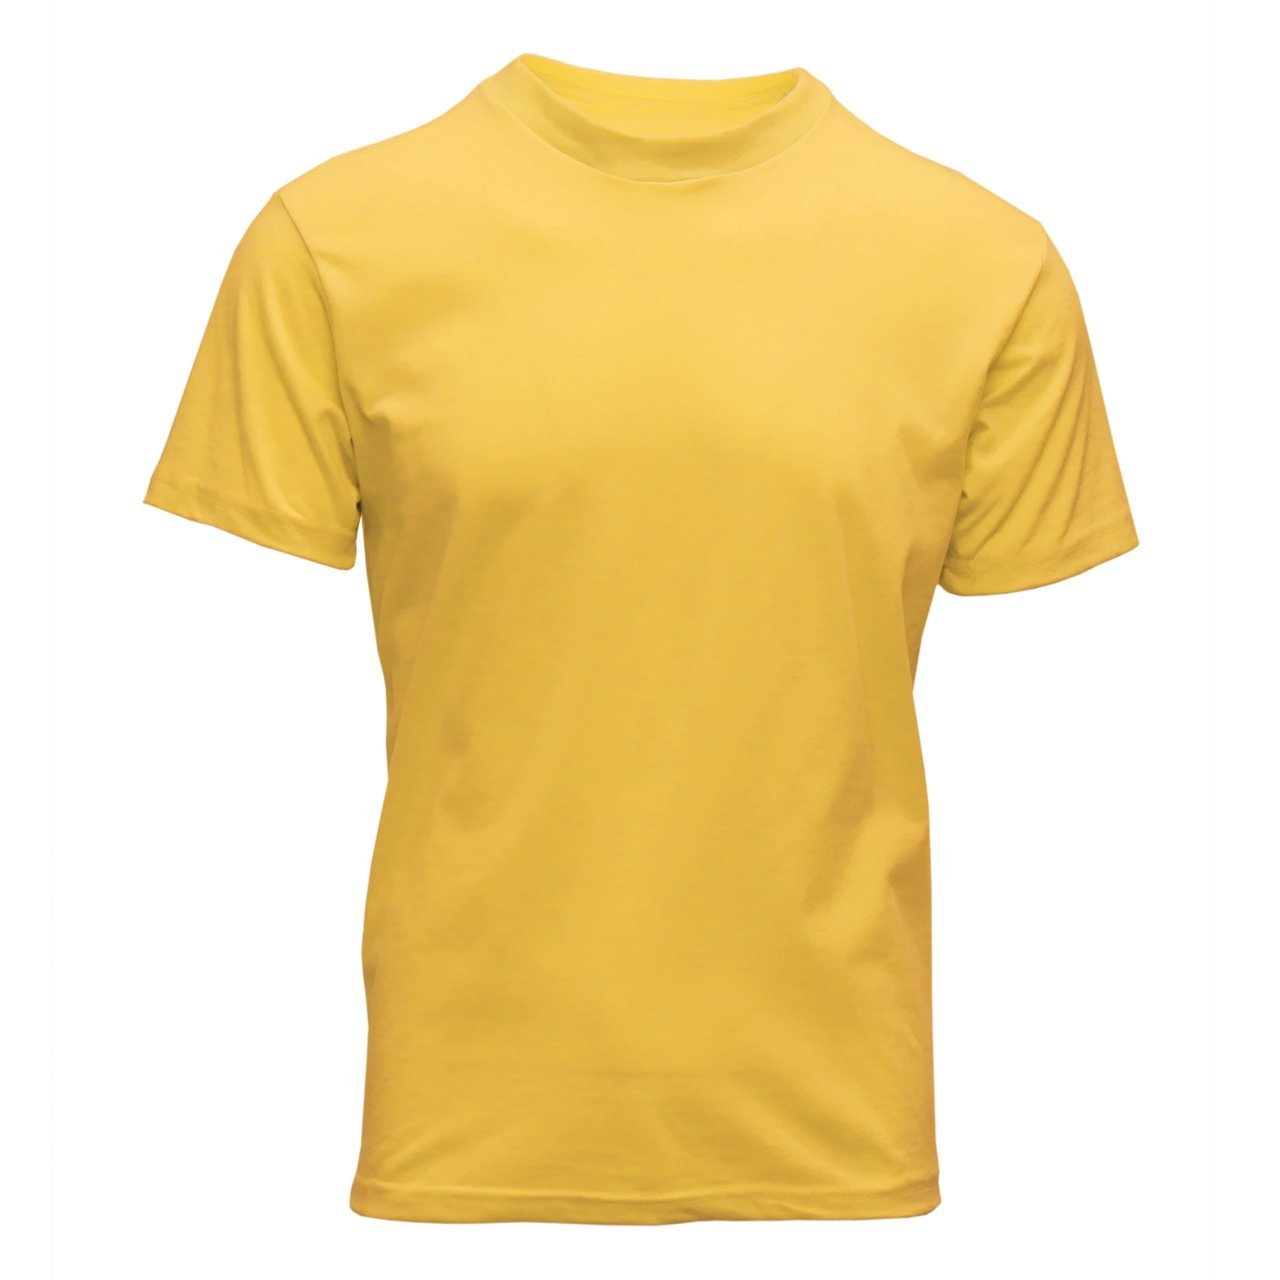 PC100MY Eco REPREVE® Recycled Polyester/Cotton Crew T-Shirt - Maize Yellow